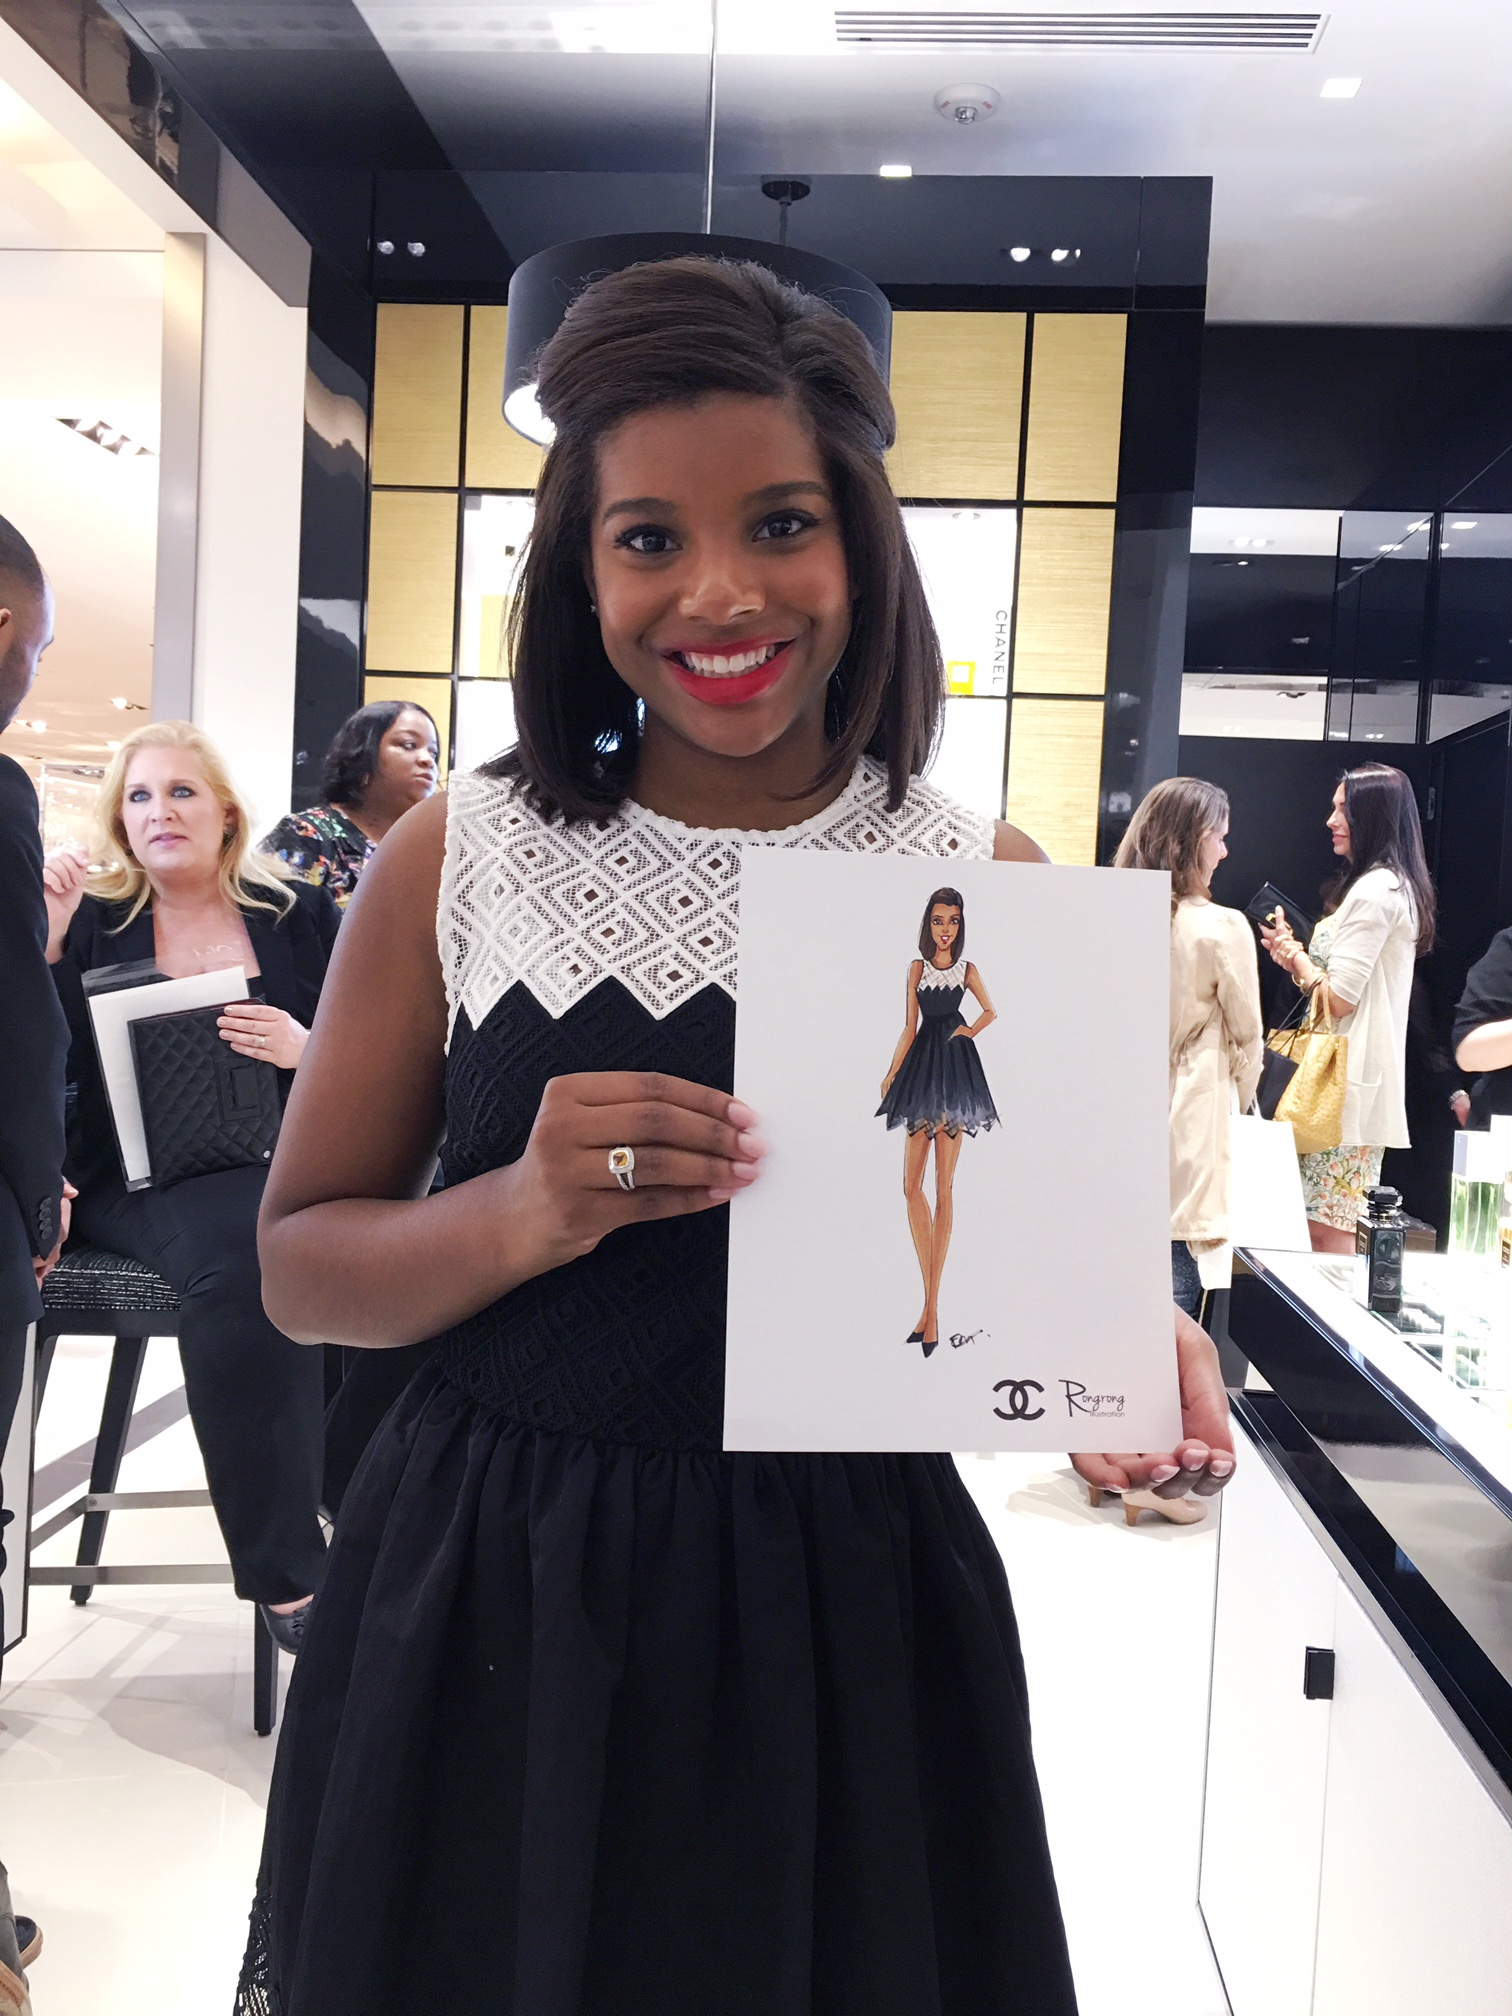 Love her smile! Chanel lipstick is a must have!